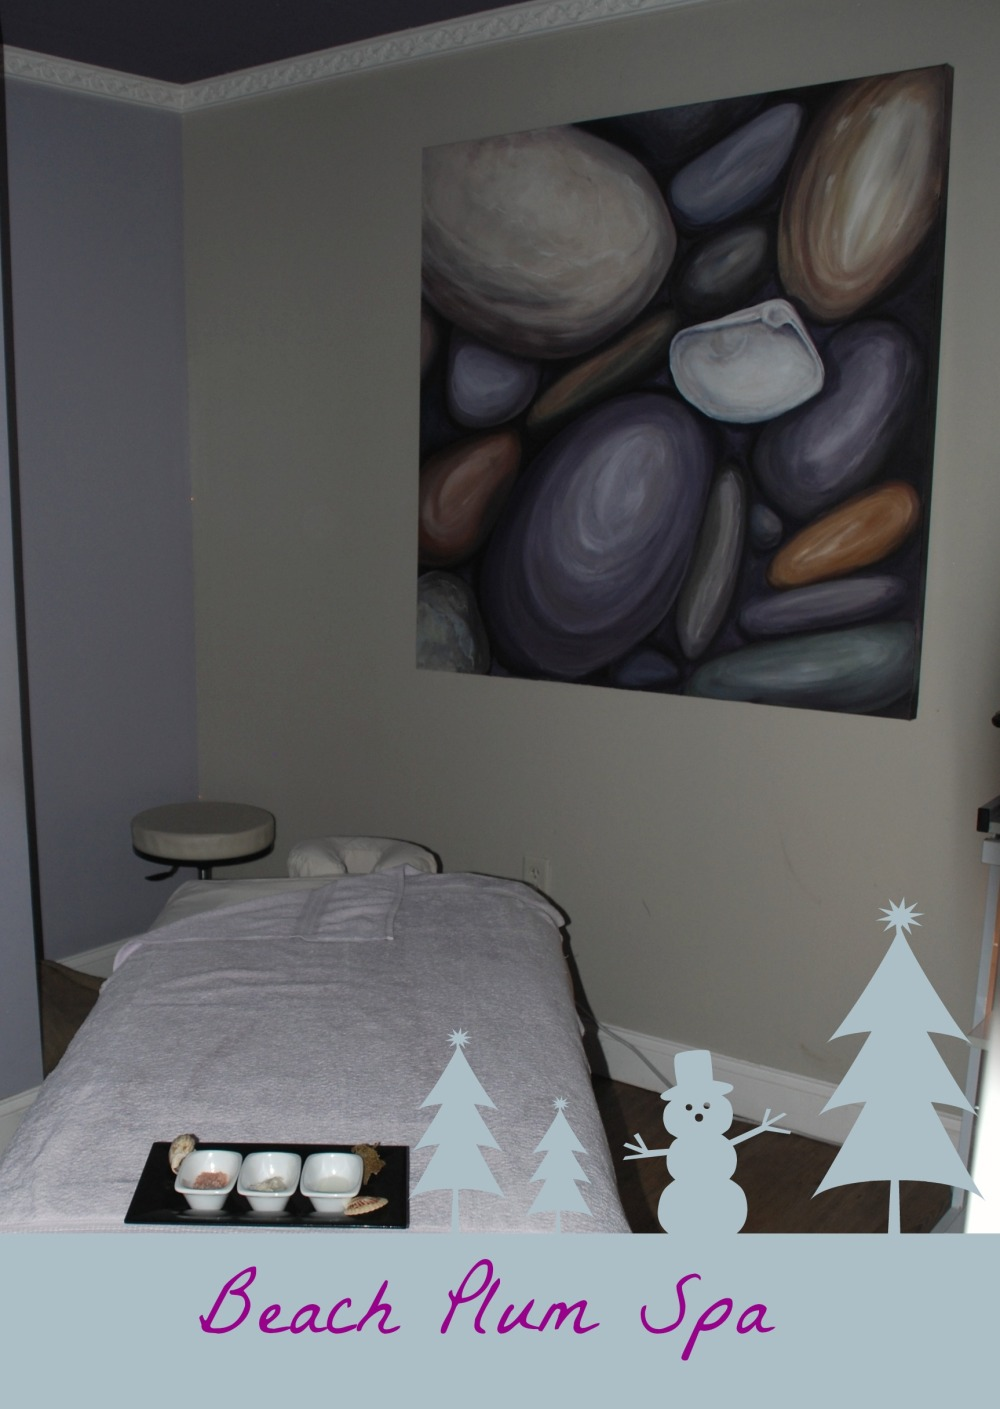 room beach plum spa